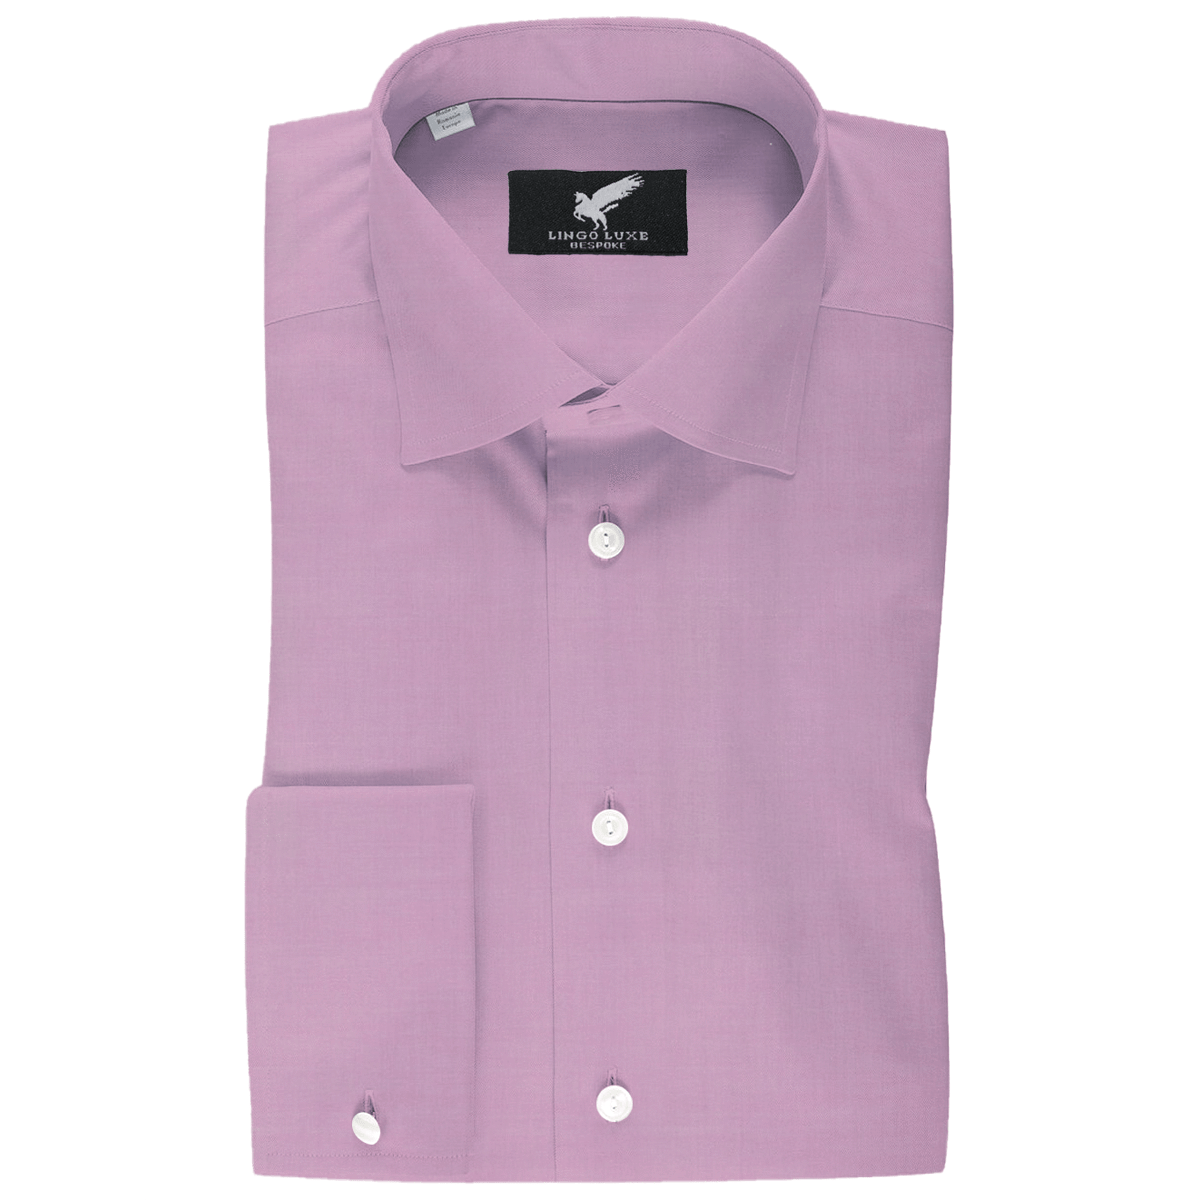 Men's Business Basics Shirt | Lingo Luxe Pink-Lingo Luxe Bespoke